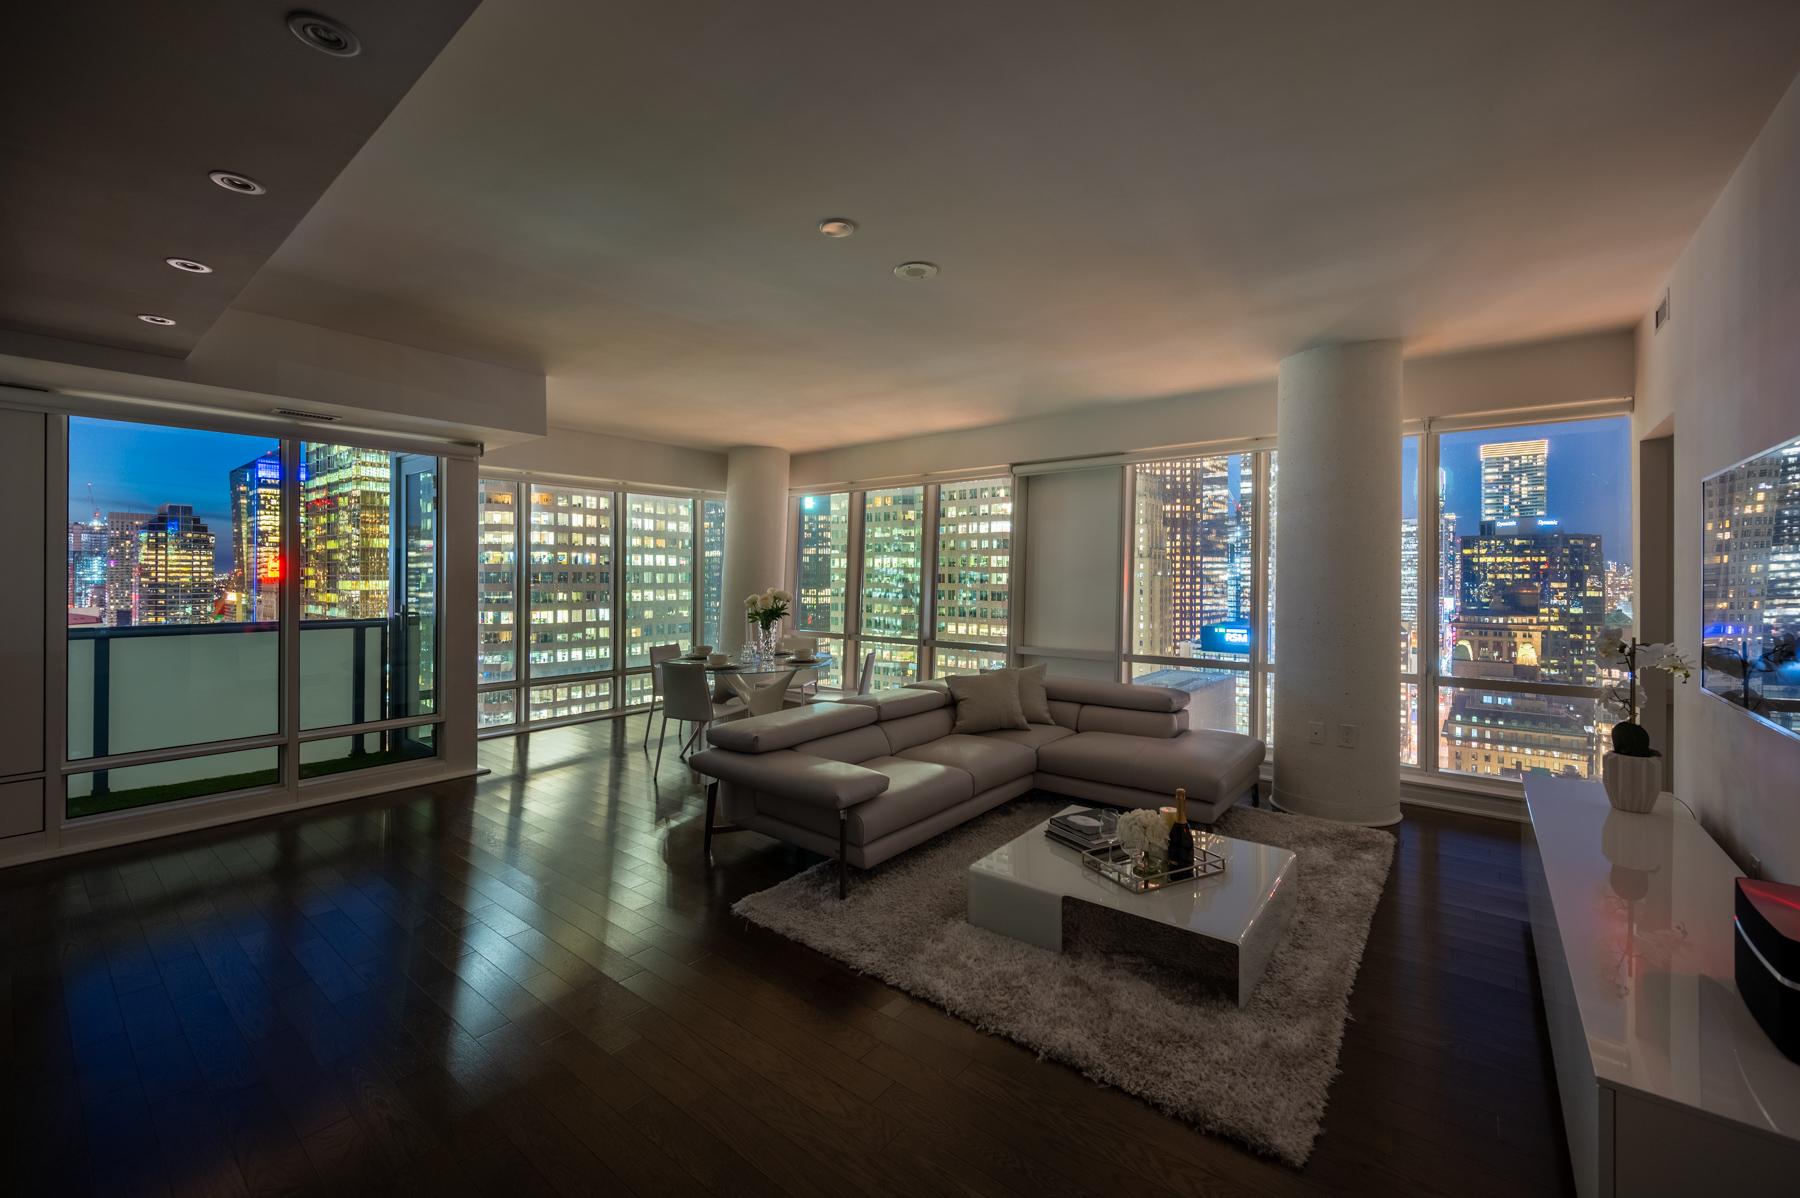 Condo living room lit by light from buildings.